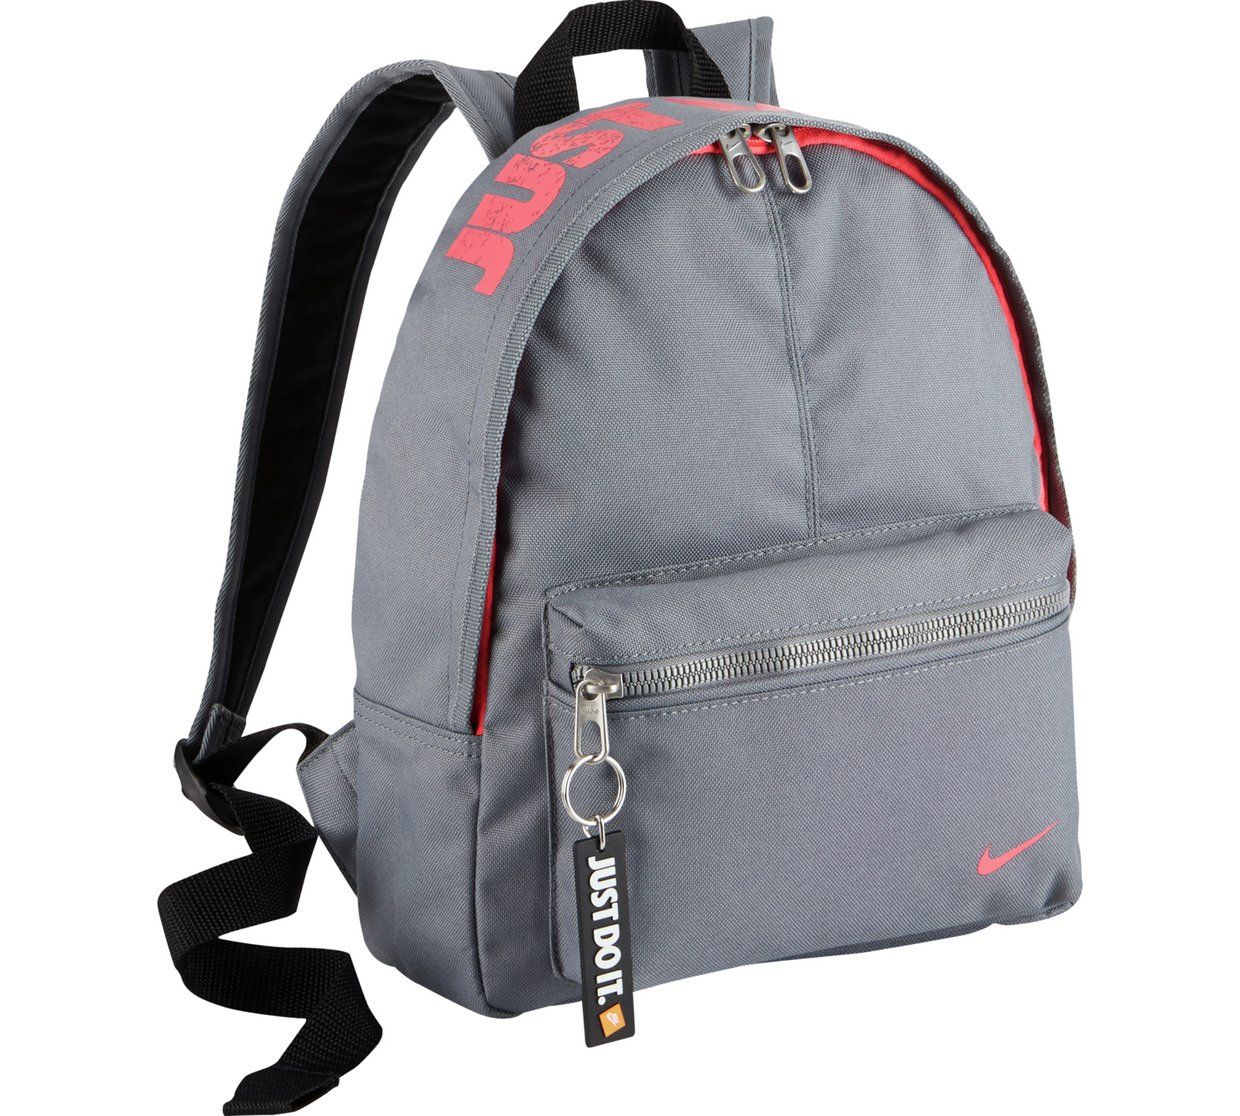 a466a8dbb2 Buy Nike Mini Black Backpack - Pink and Grey at Argos.co.uk - Your ...